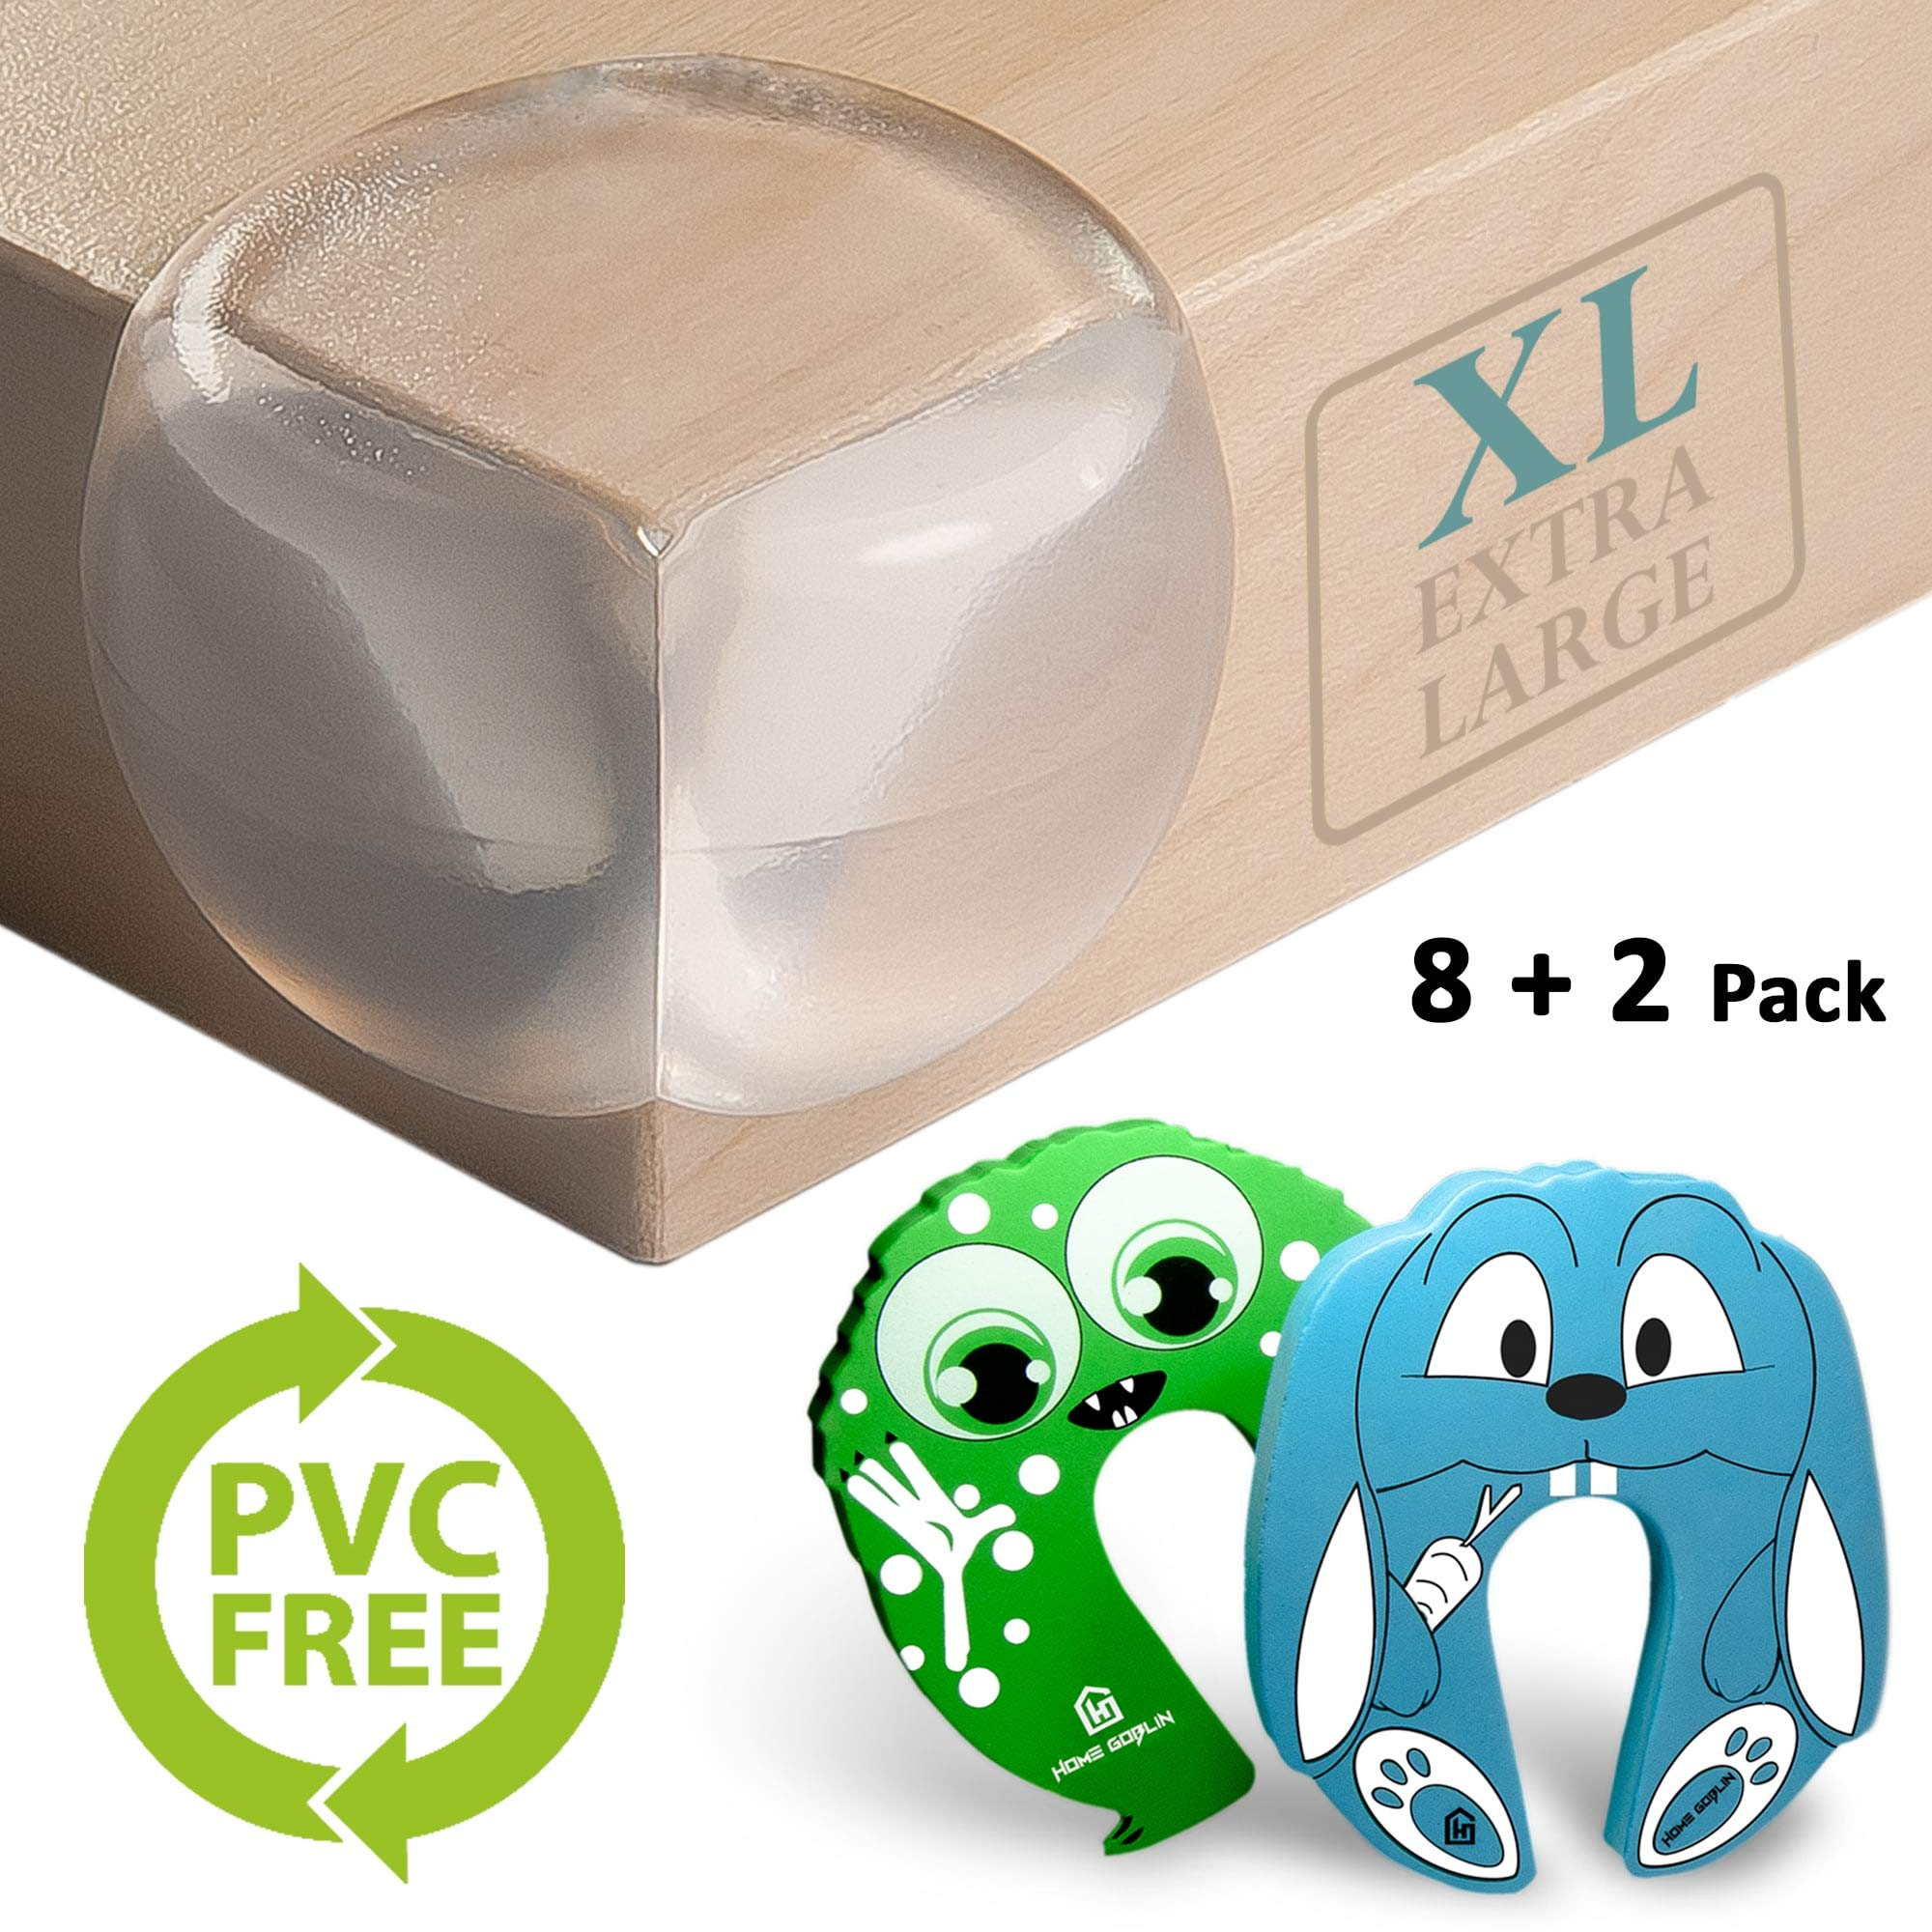 Corner Guards - Extra Large for Safety   X5 More Adhesive Power Pre-Applied   200% Softer Material   8+2 Pack   PVC Free Baby Friendly   Aesthetically Clear + Child Door Finger Pinch Protectors